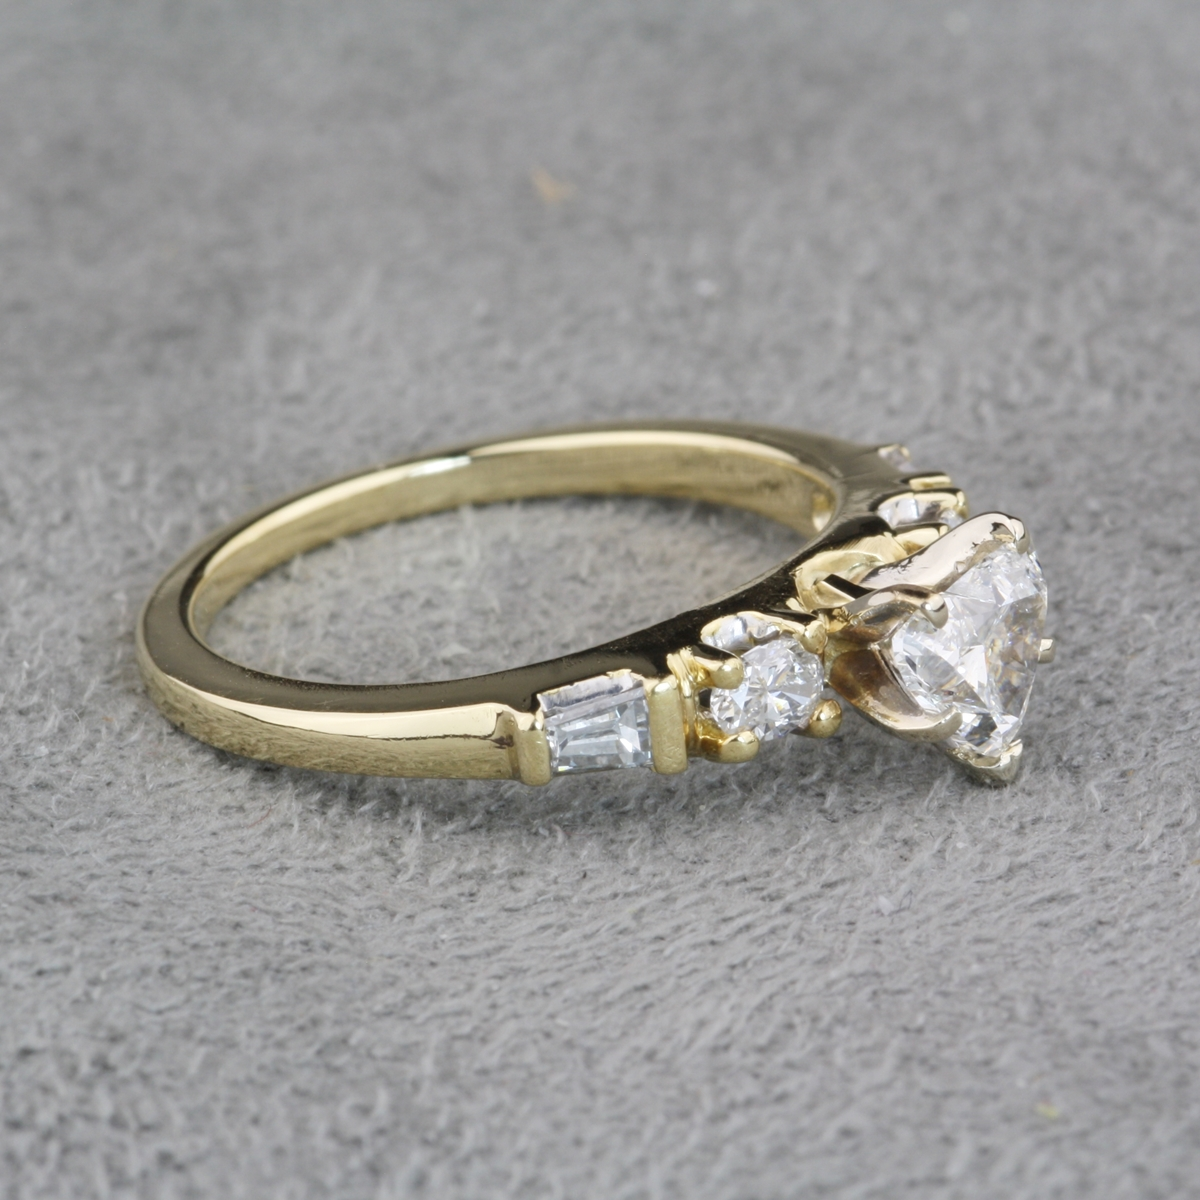 Pre Owned 18 Karat Yellow Gold Heart Shaped Owned 18 Karat Yellow Gold Heart Shaped Diamond Ring. Previously Owned Wedding Rings. Home Design Ideas